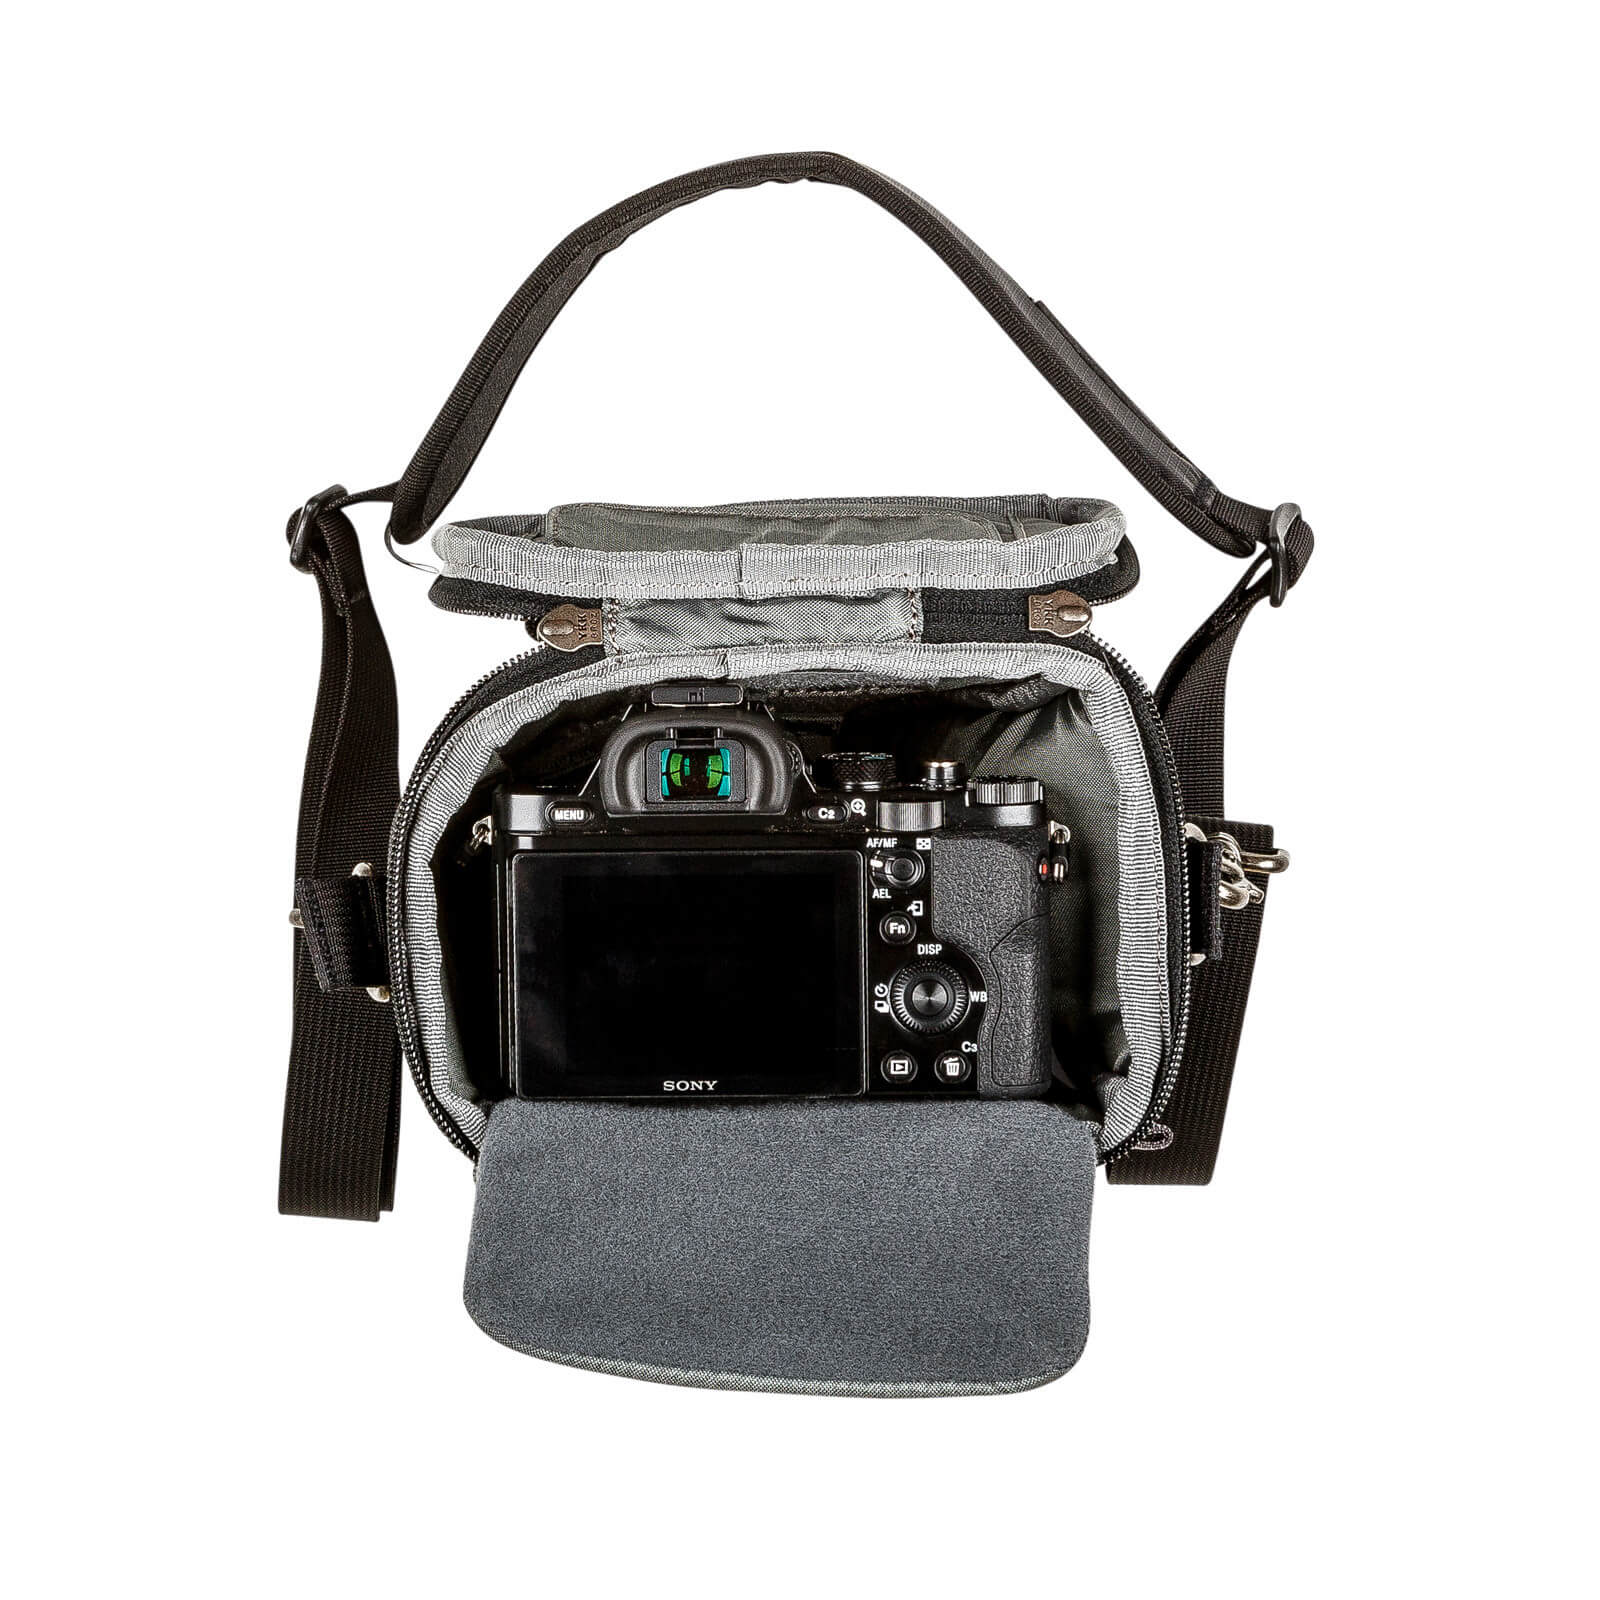 Digital Holster 10,槍套包,DH861,ThinkTank photo,創意坦克